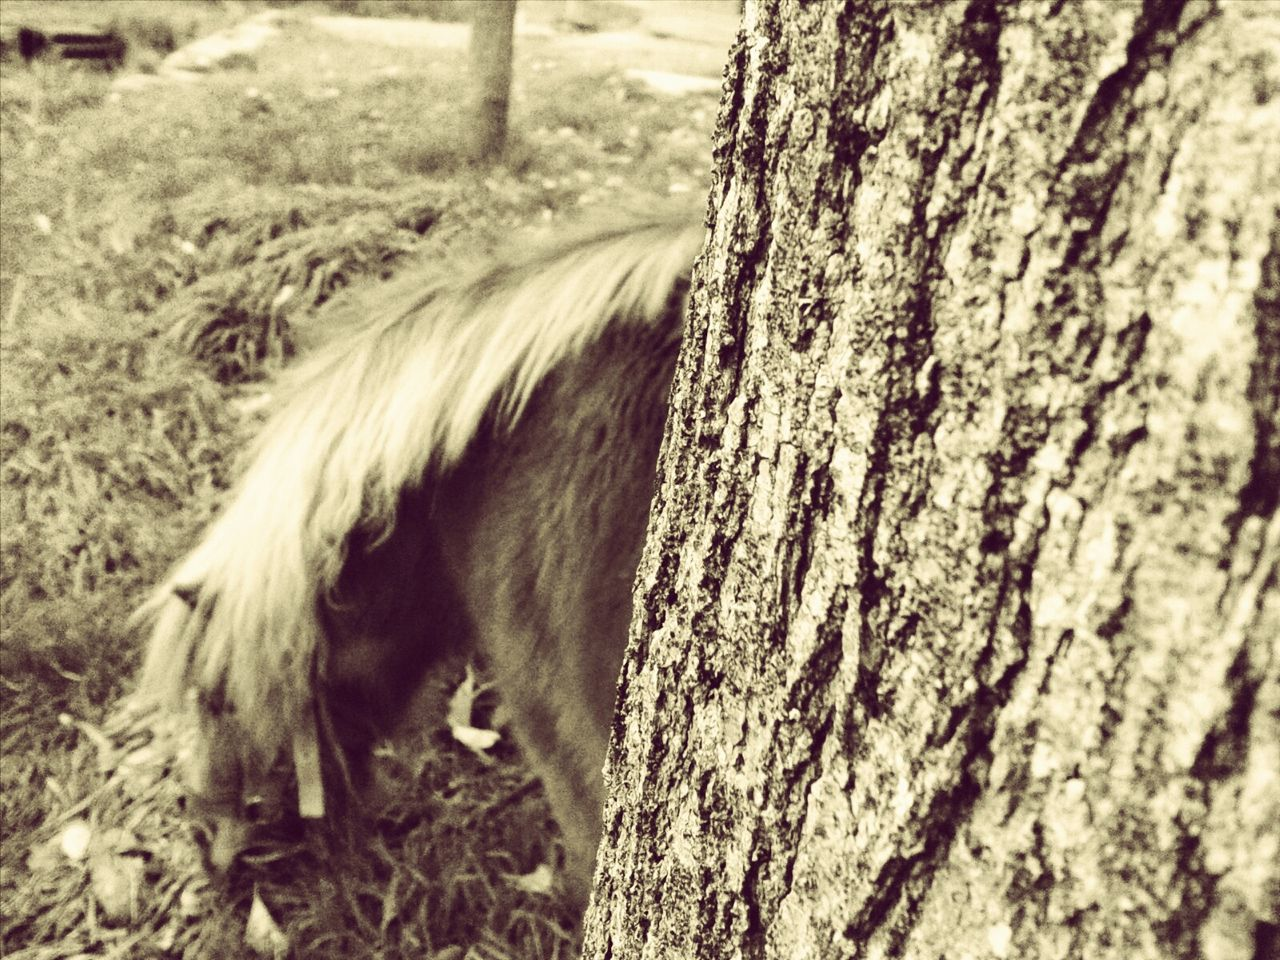 animal themes, domestic animals, mammal, day, one animal, no people, tree trunk, outdoors, livestock, nature, grass, tree, close-up